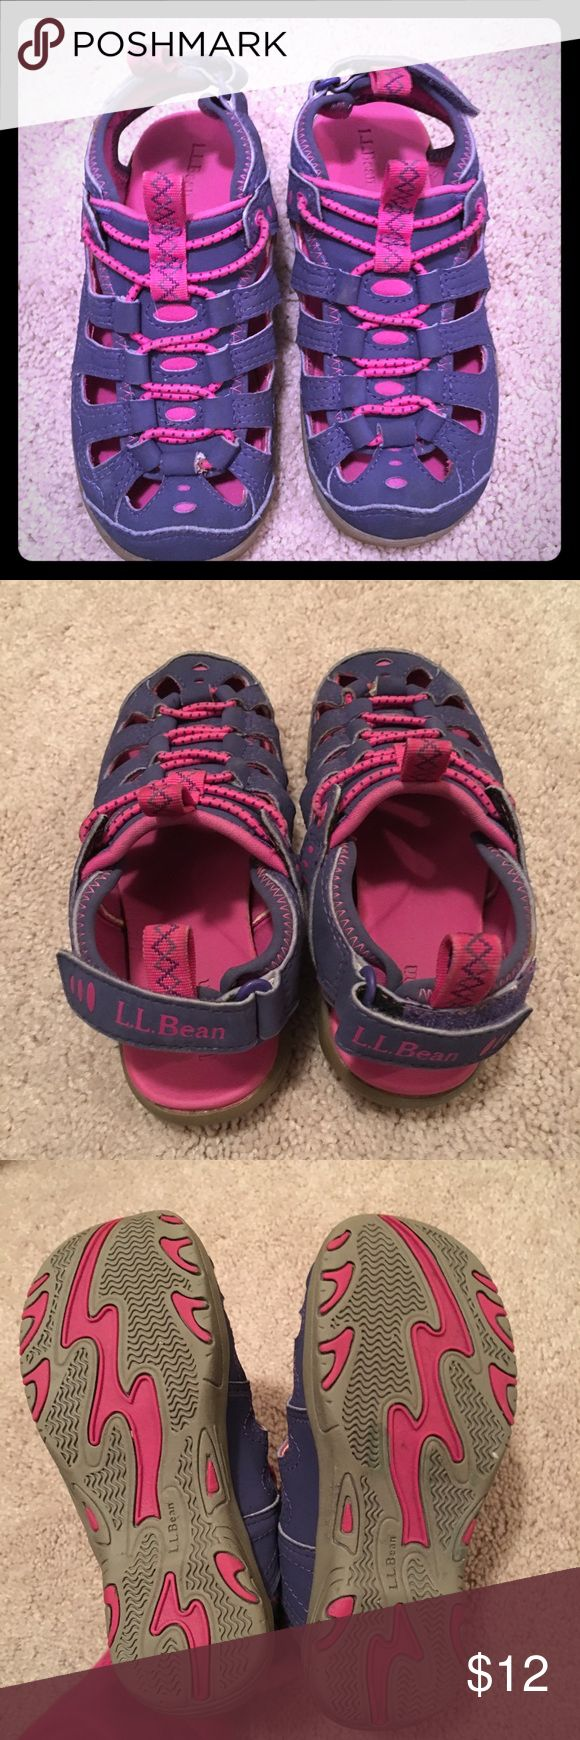 L.L. Bean Toddler Girls Exploring Sandals These waterproof sandals are perfect for use as pool shoes or to wear for playing in a creek. They're in good condition for water play. Some signs of wear (see pics).  Comes from a smoke-free & pet-free home. L.L. Bean Shoes Water Shoes